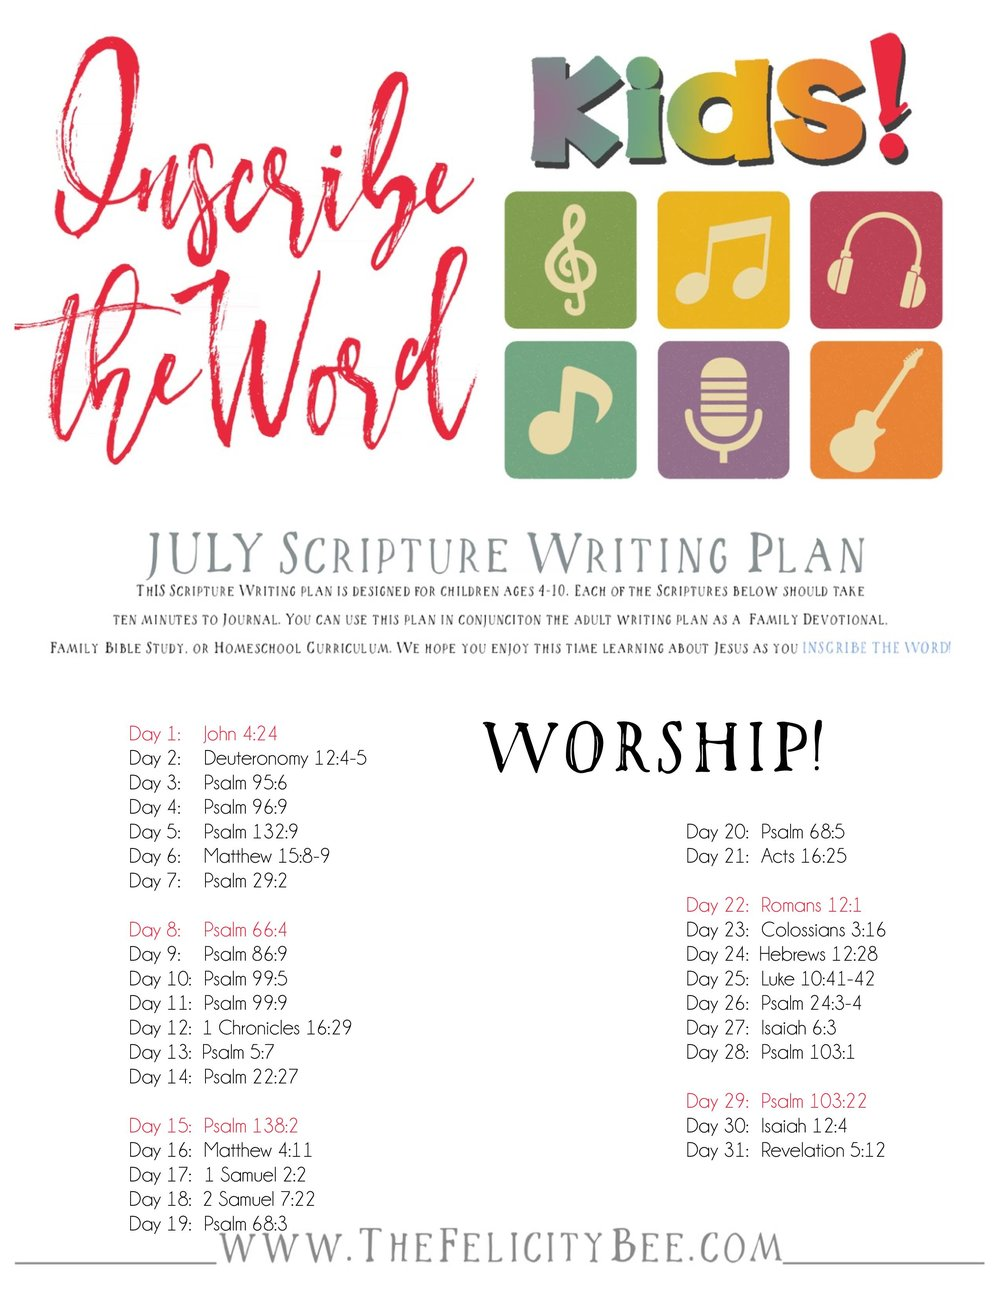 Join us this month as we Inscribe the Word with WORSHIP. This kids' plan will be the perfect way to study the Scriptures with your kiddos!